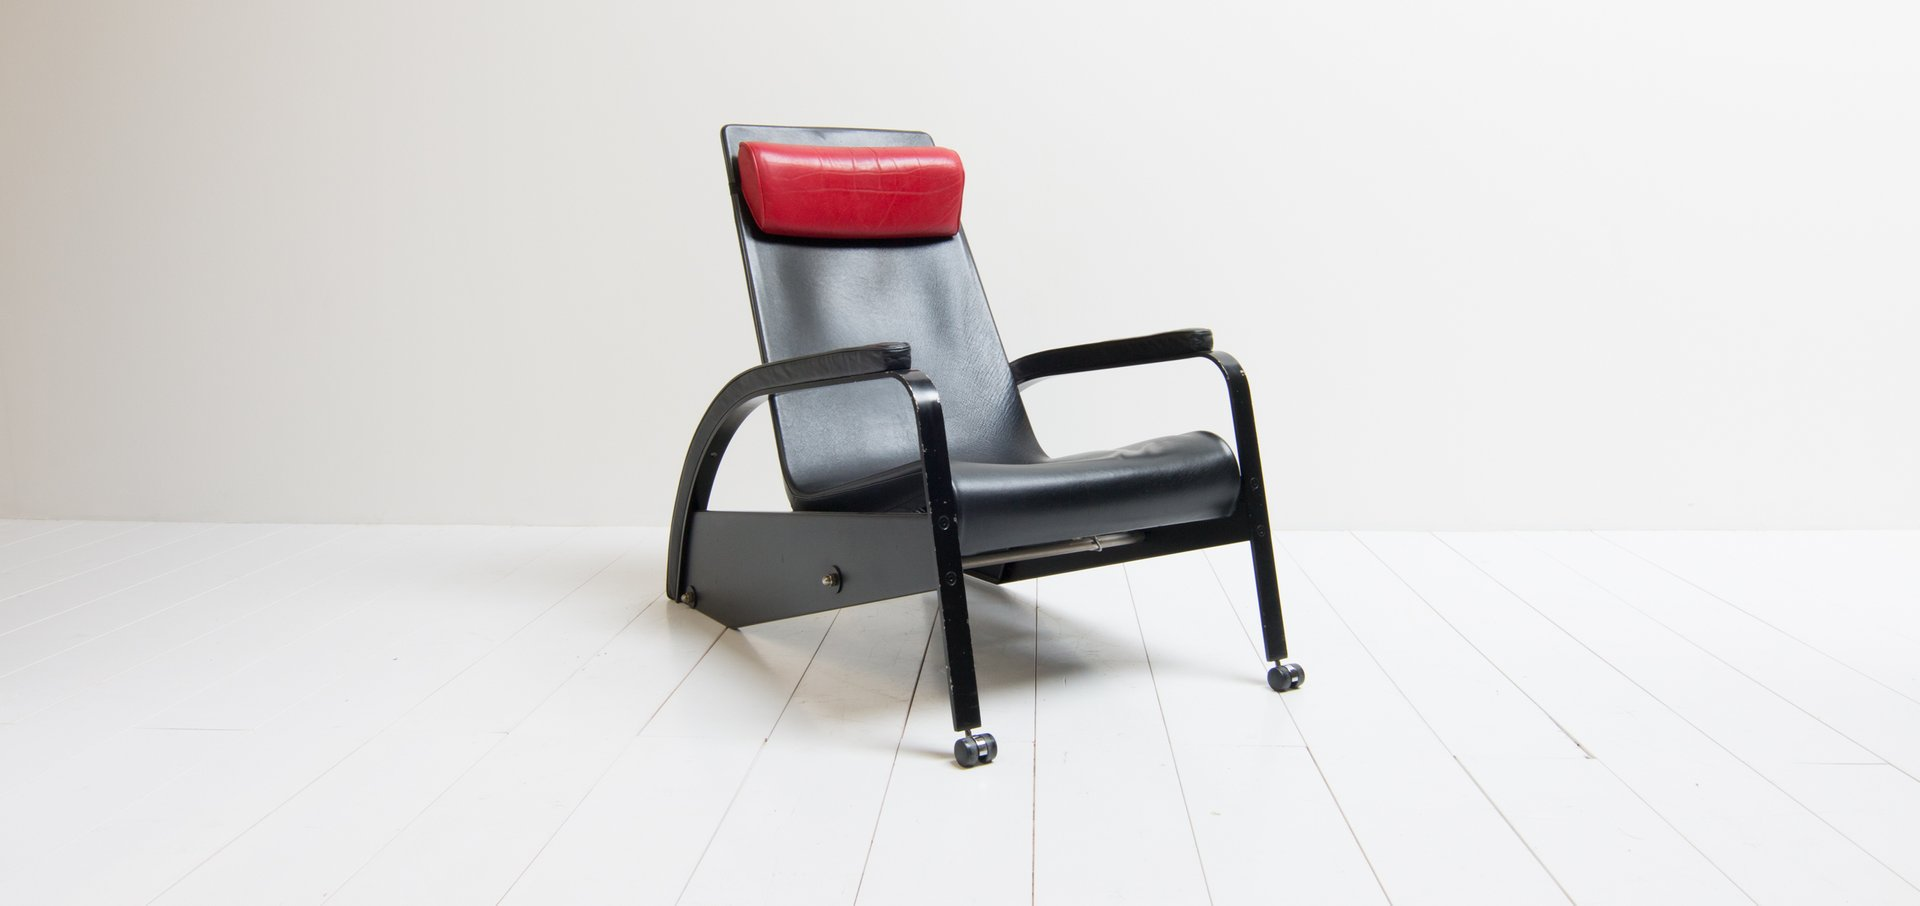 Vintage Model D80 1 Grand Repos Lounge Chair By Jean Prouvé For Tecta